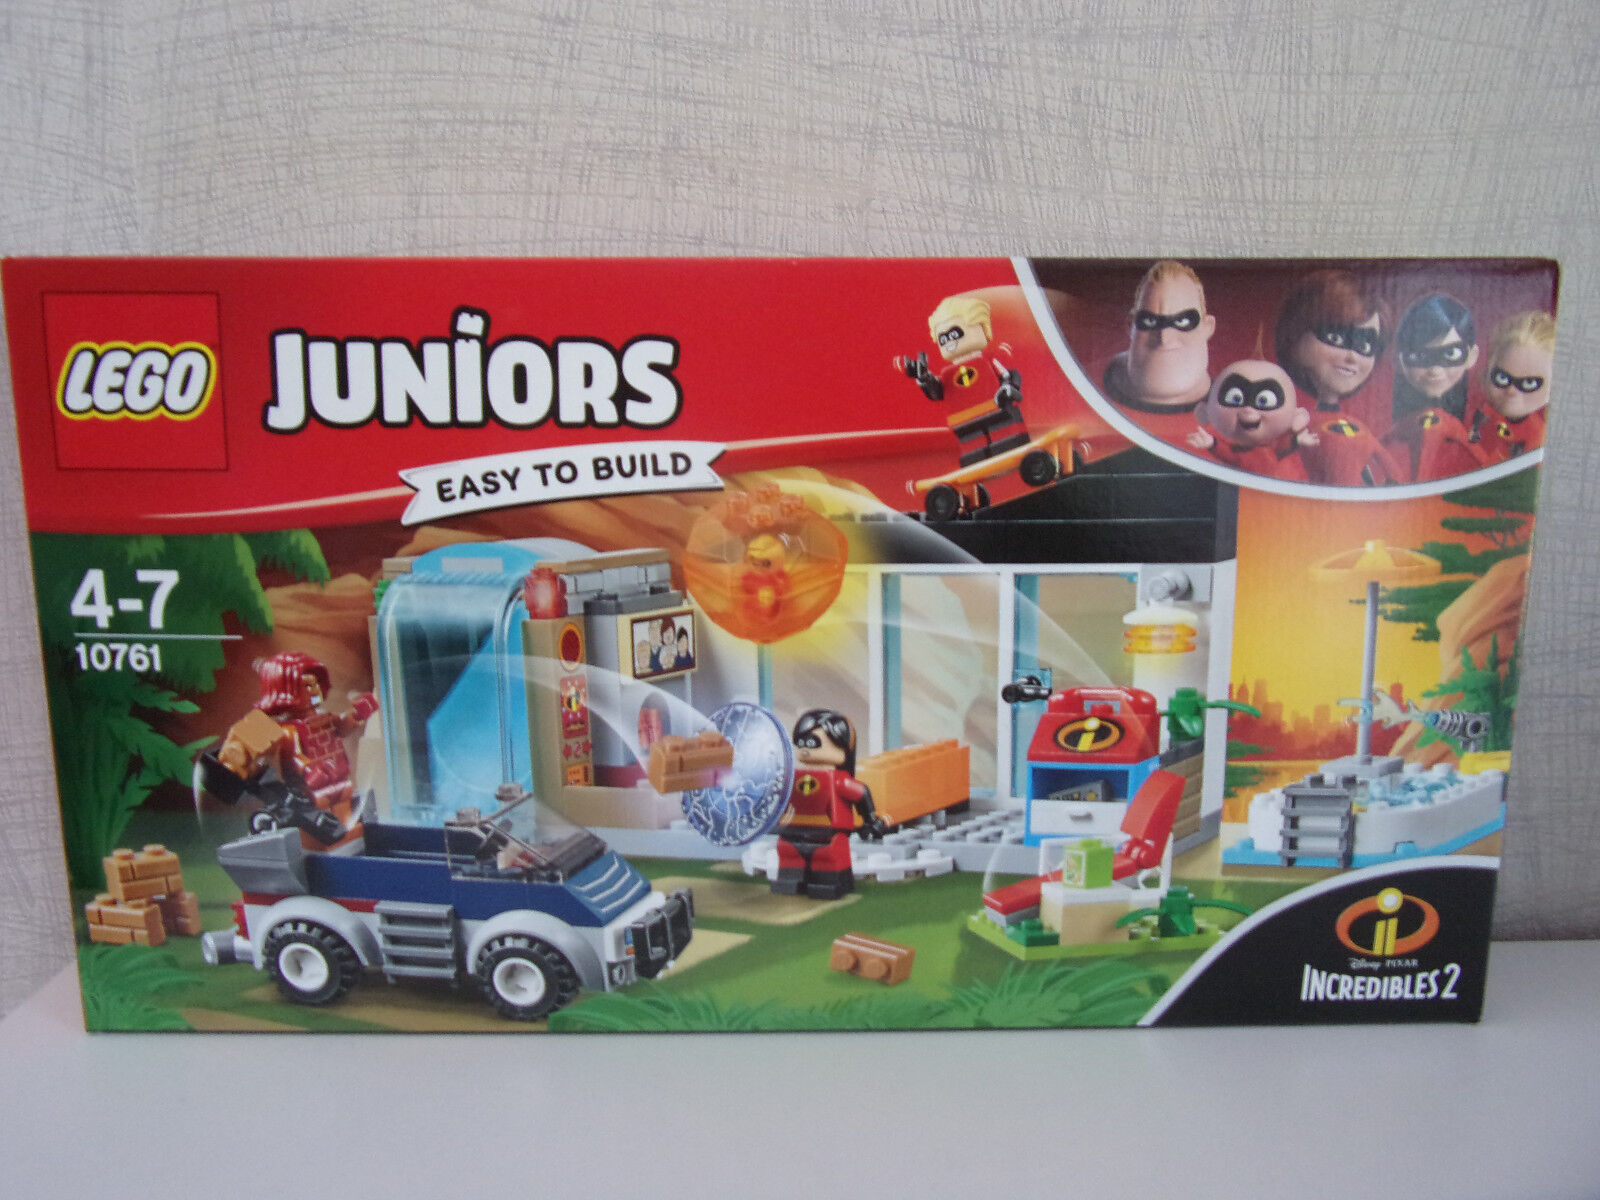 Lego Juniors   Easy To Build   10761 Die Große Évasion  Incrossoibles 2  -